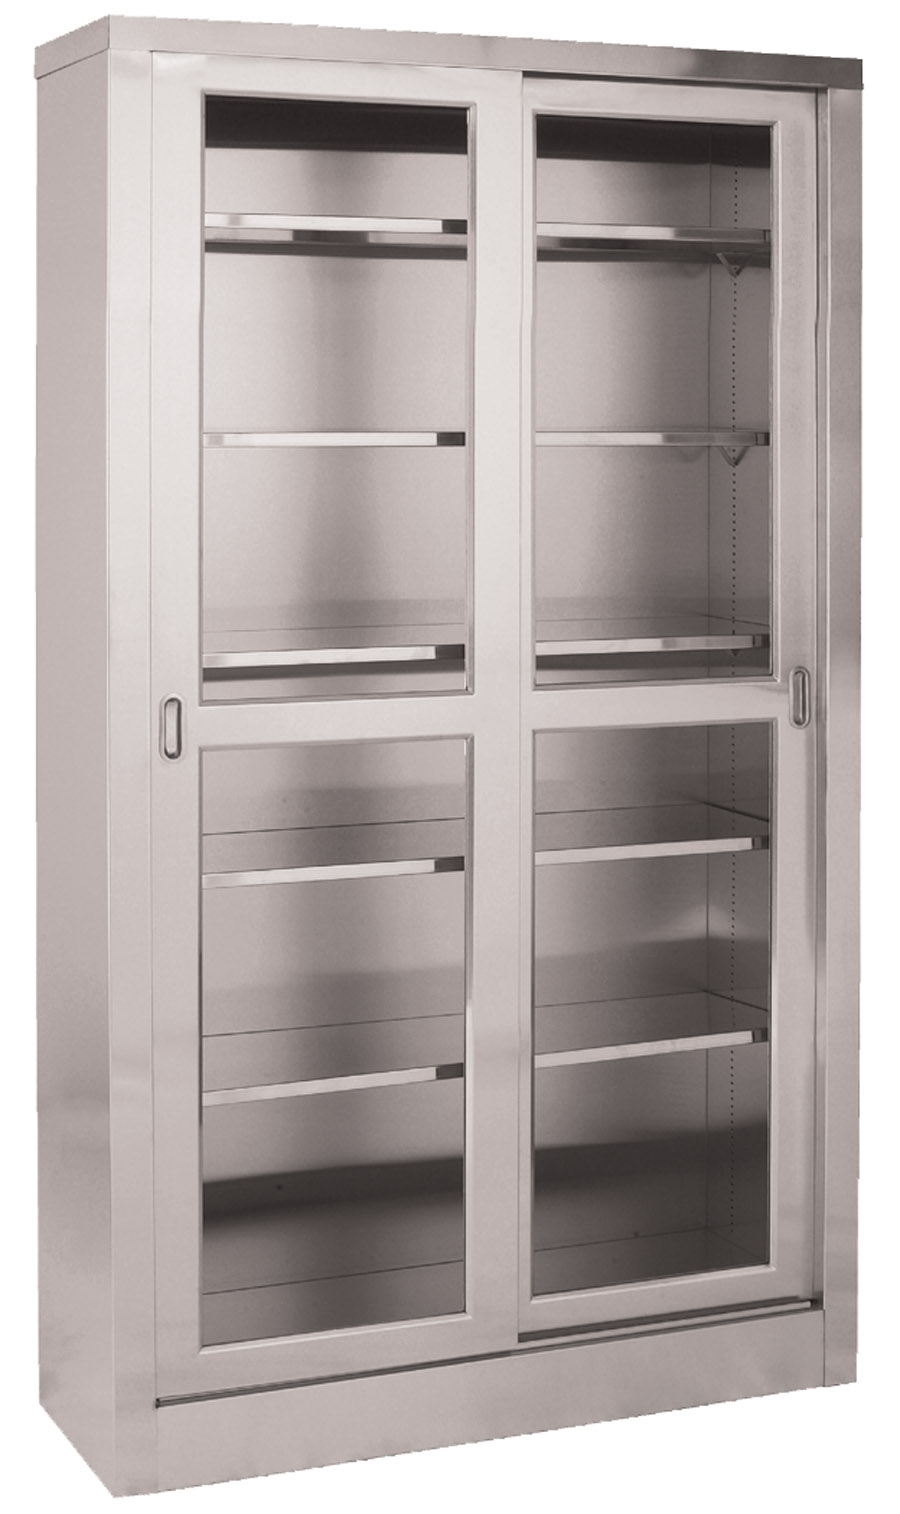 Permalink to Medical Storage Cabinets Lock